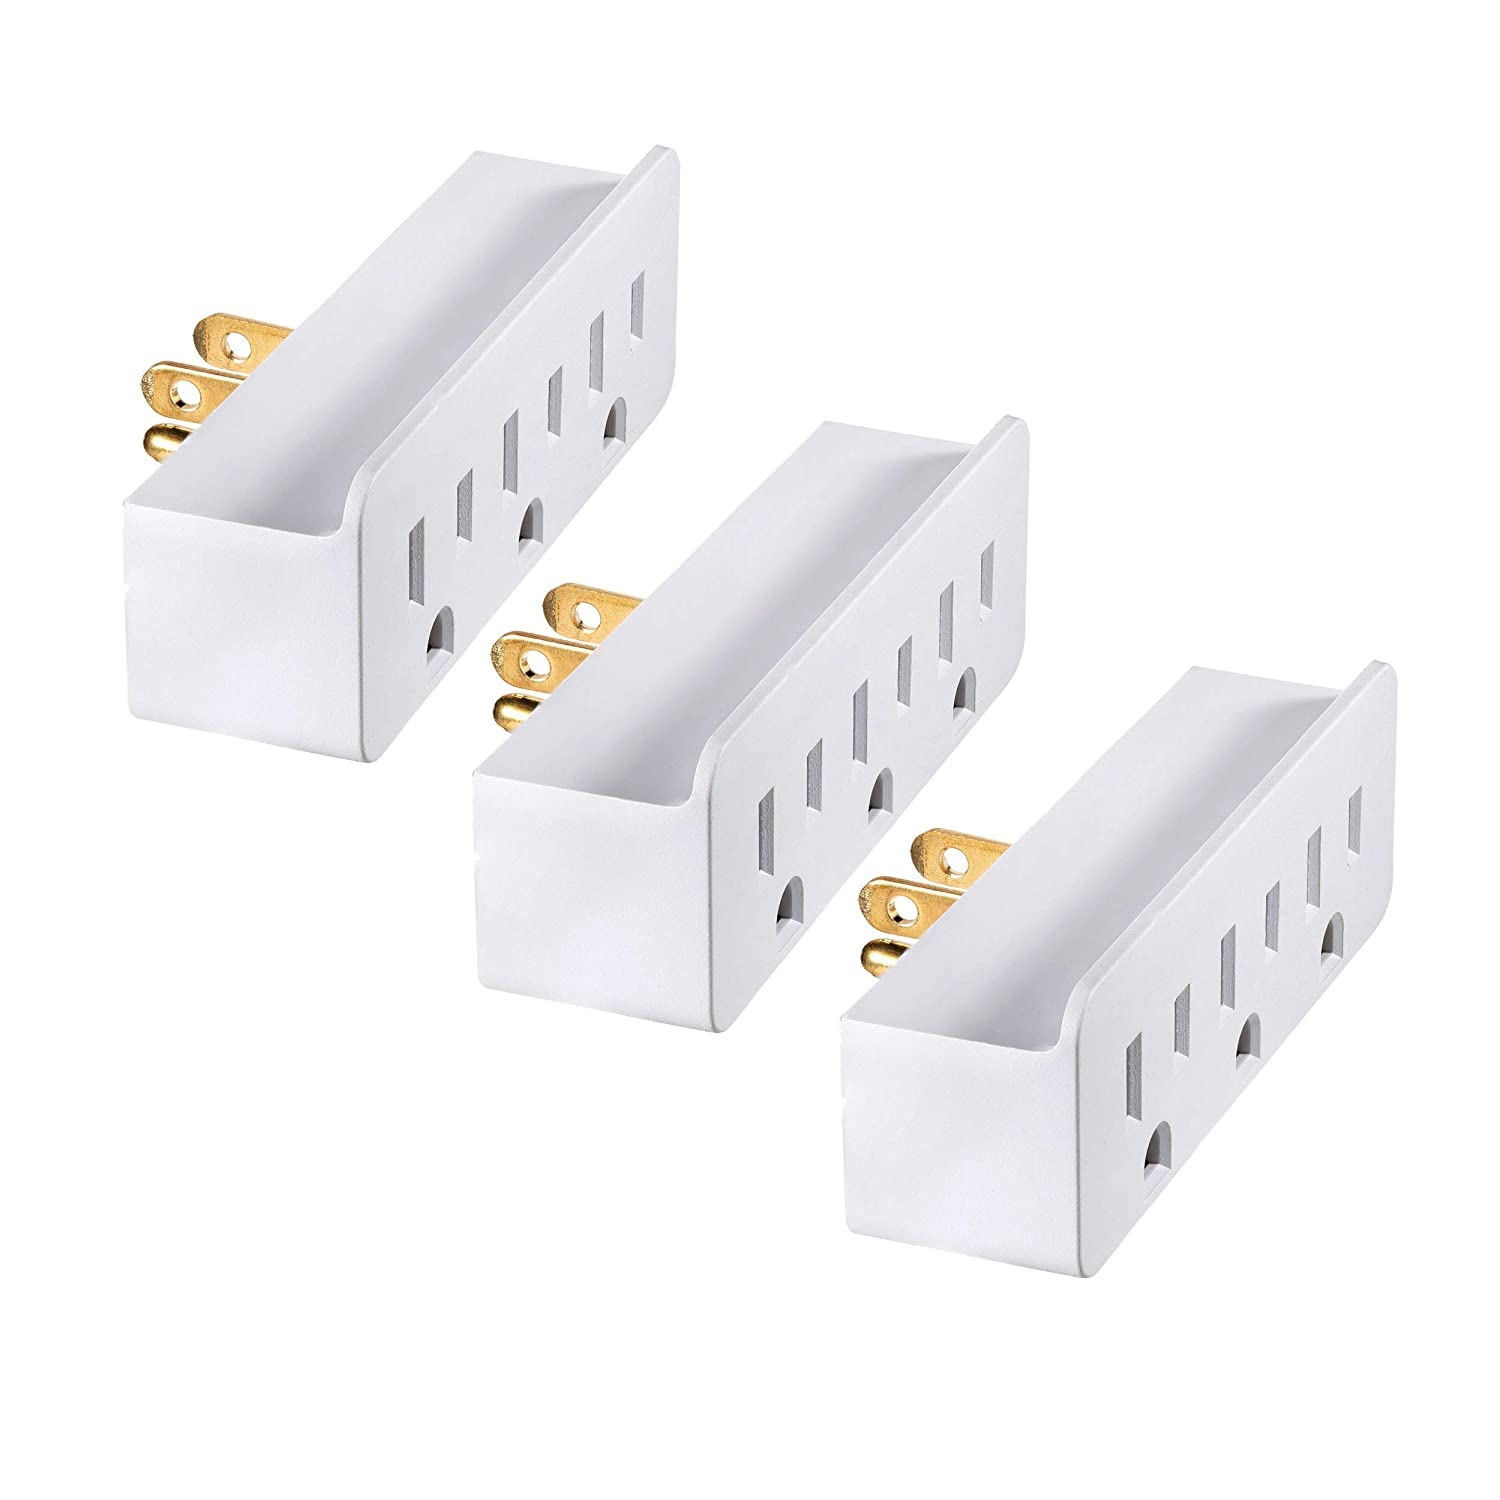 Maximm (3 Pack) 3 Outlet Grounded Wall Tap Adapter, Power Outlet Splitter, Turn One Outlet Into 3 Multi Outlet And ETL Listed